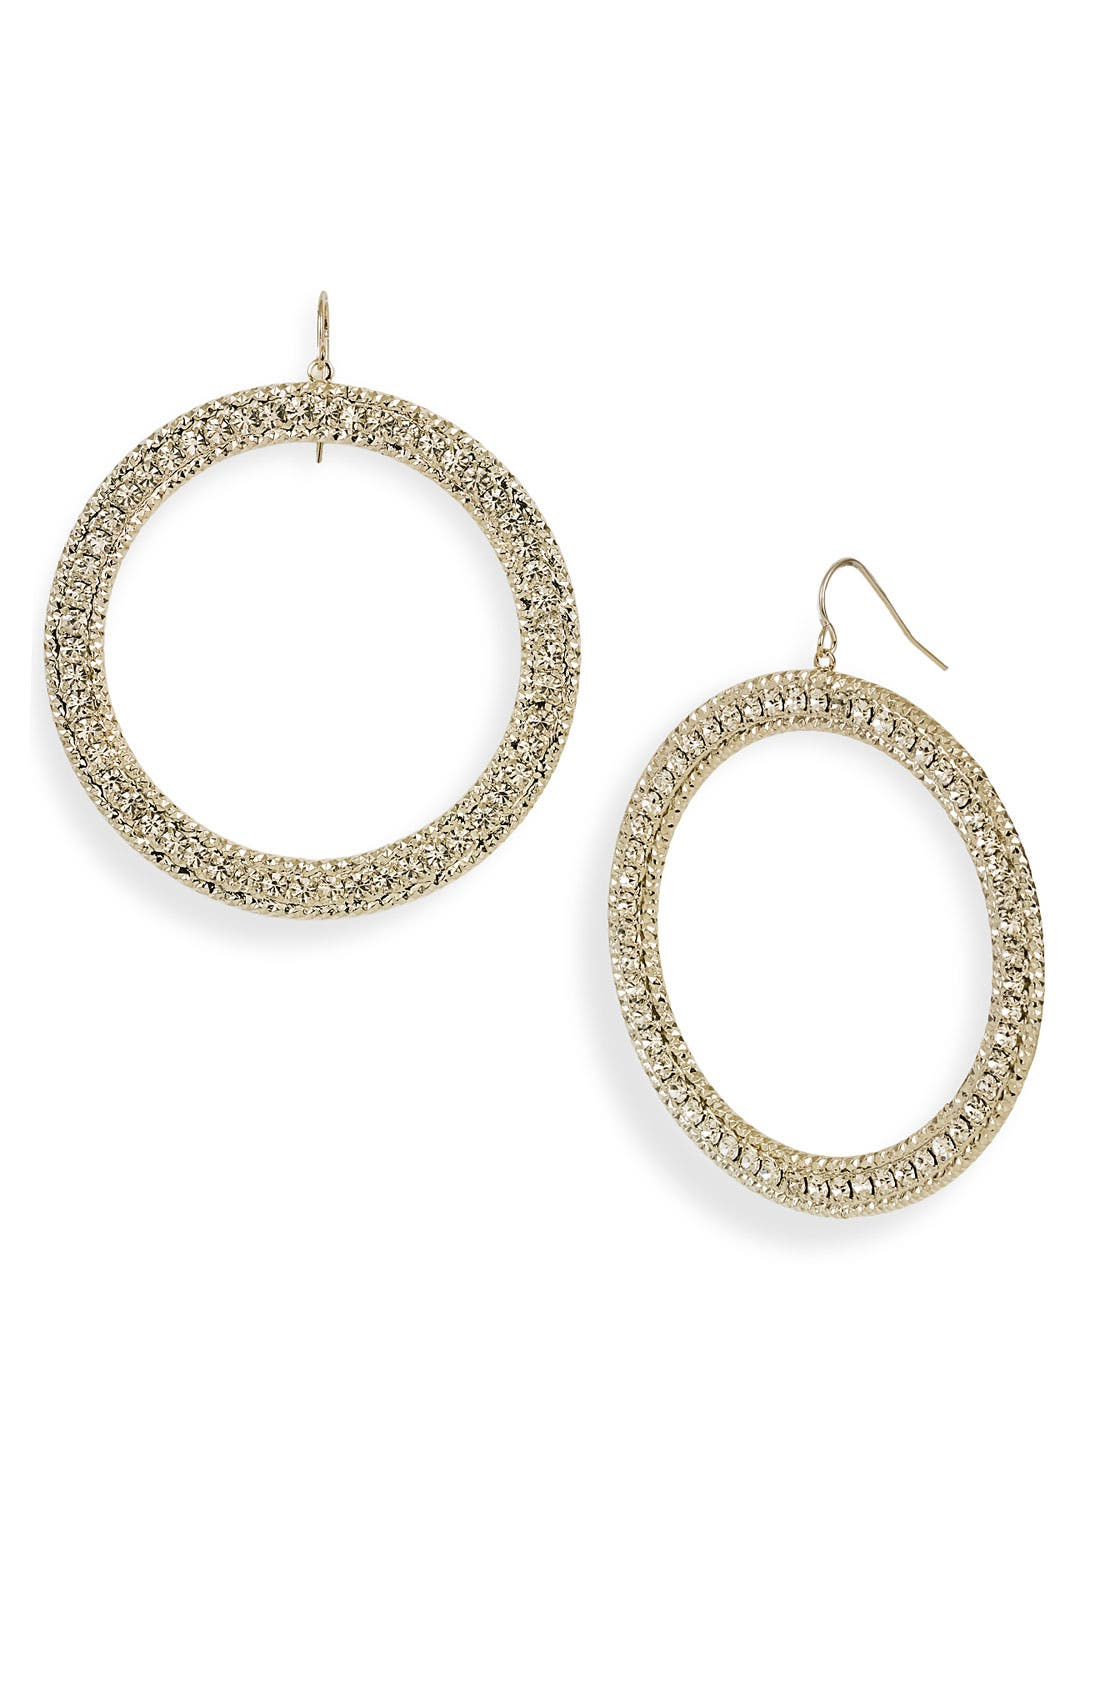 Main Image - Natasha Couture Frontal Hoop Earrings